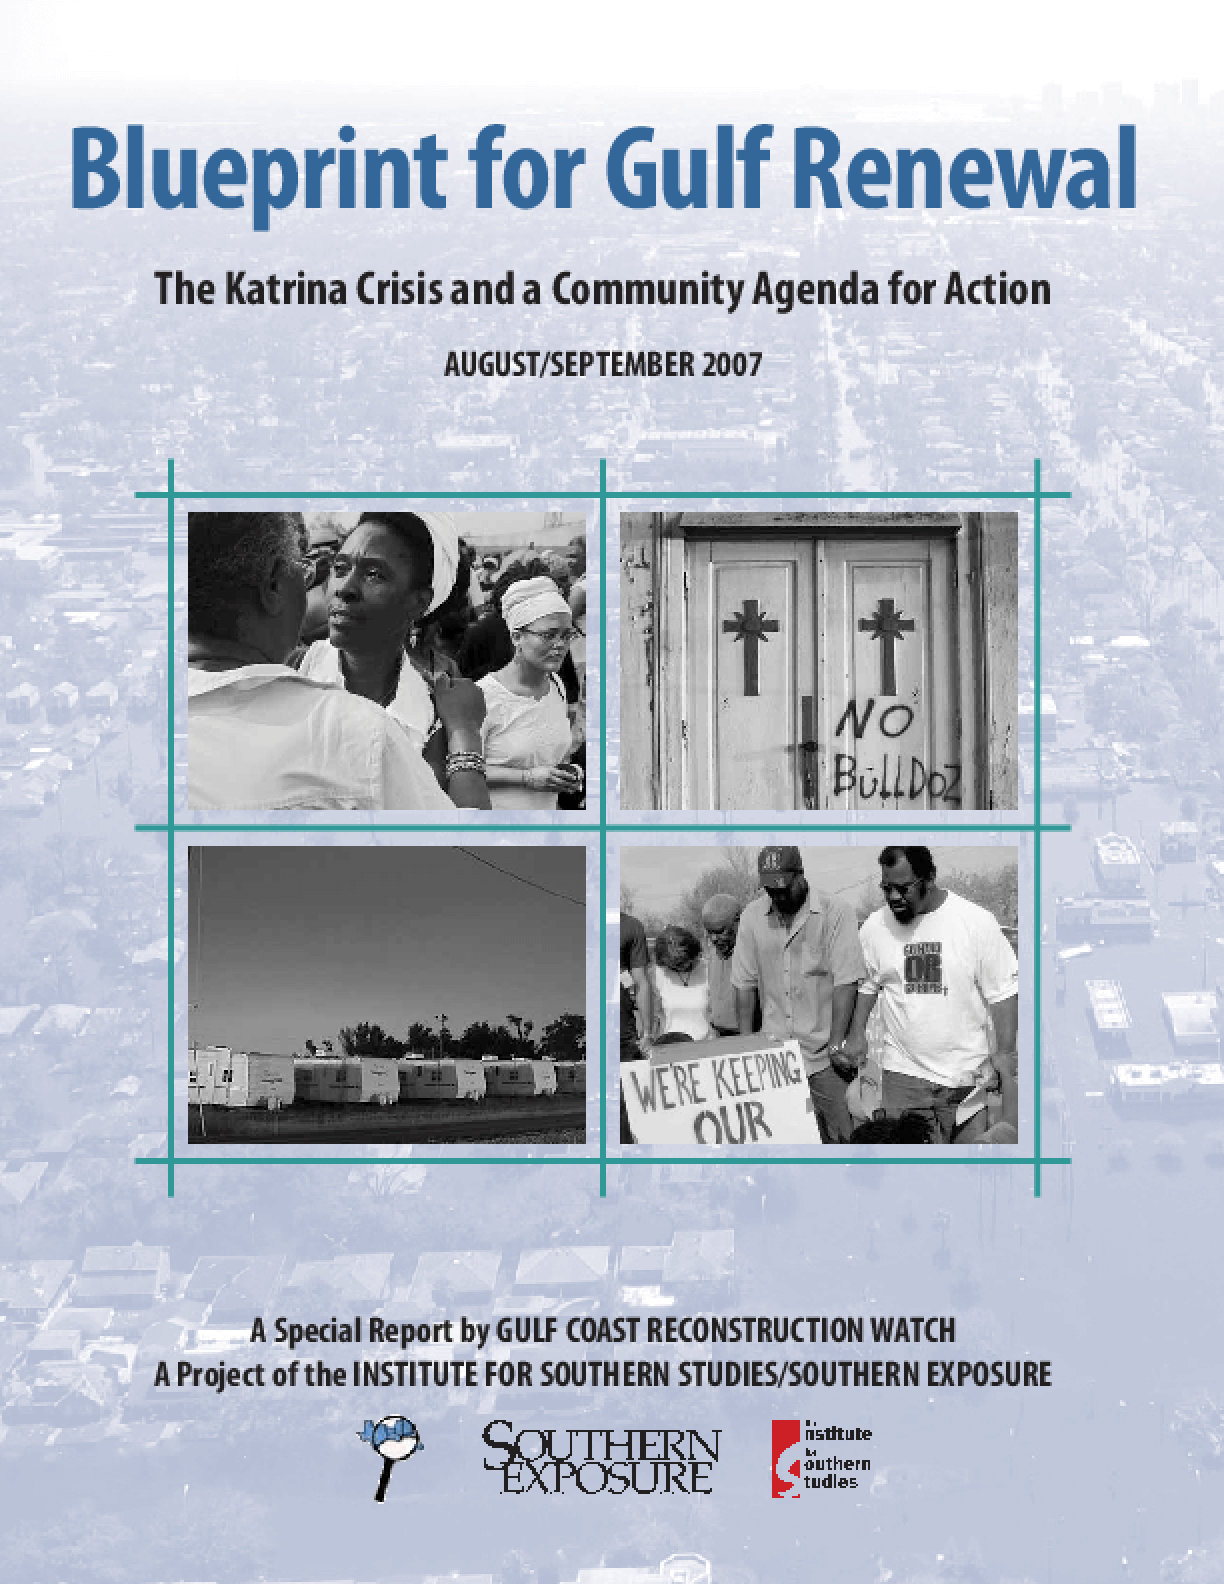 Blueprint for Gulf Renewal: The Katrina Crisis and a Community Agenda for Action